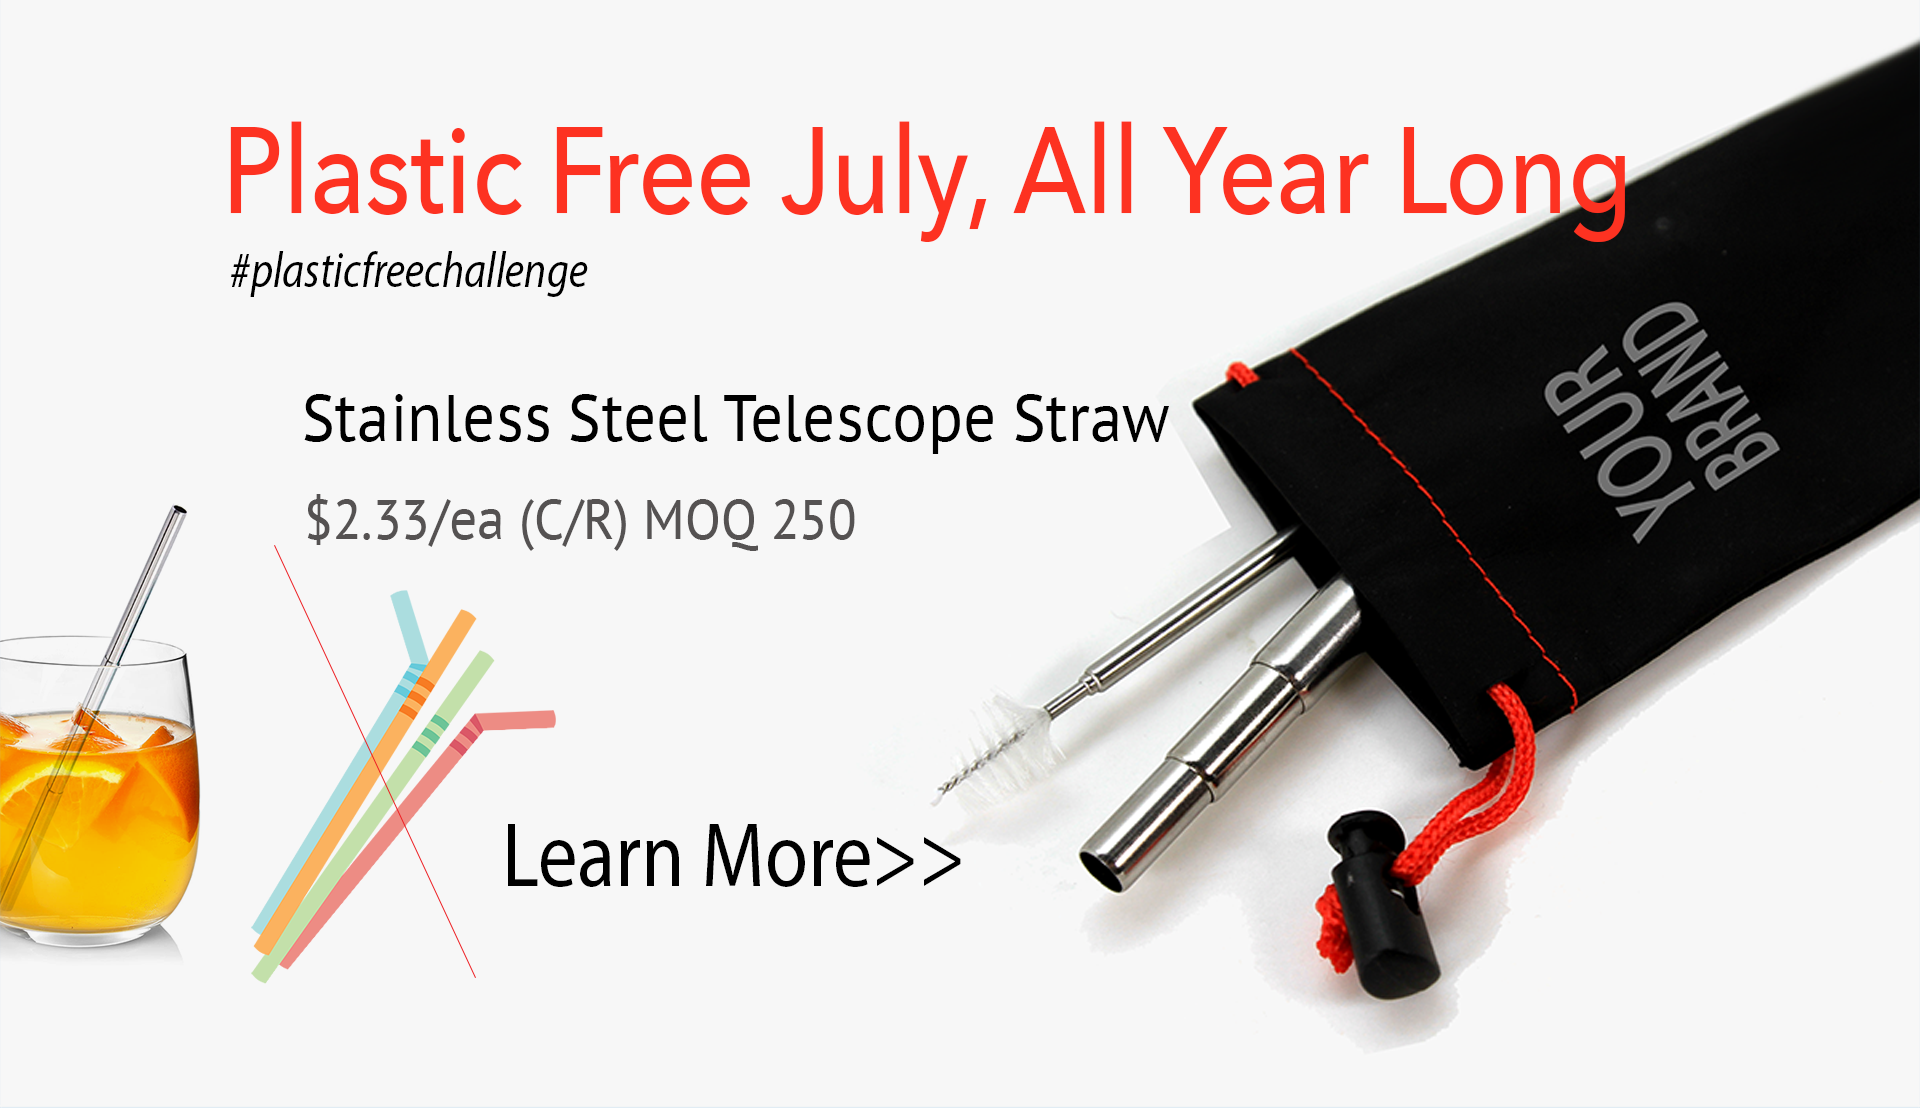 Stainless Steel Reusable Straw Campaign